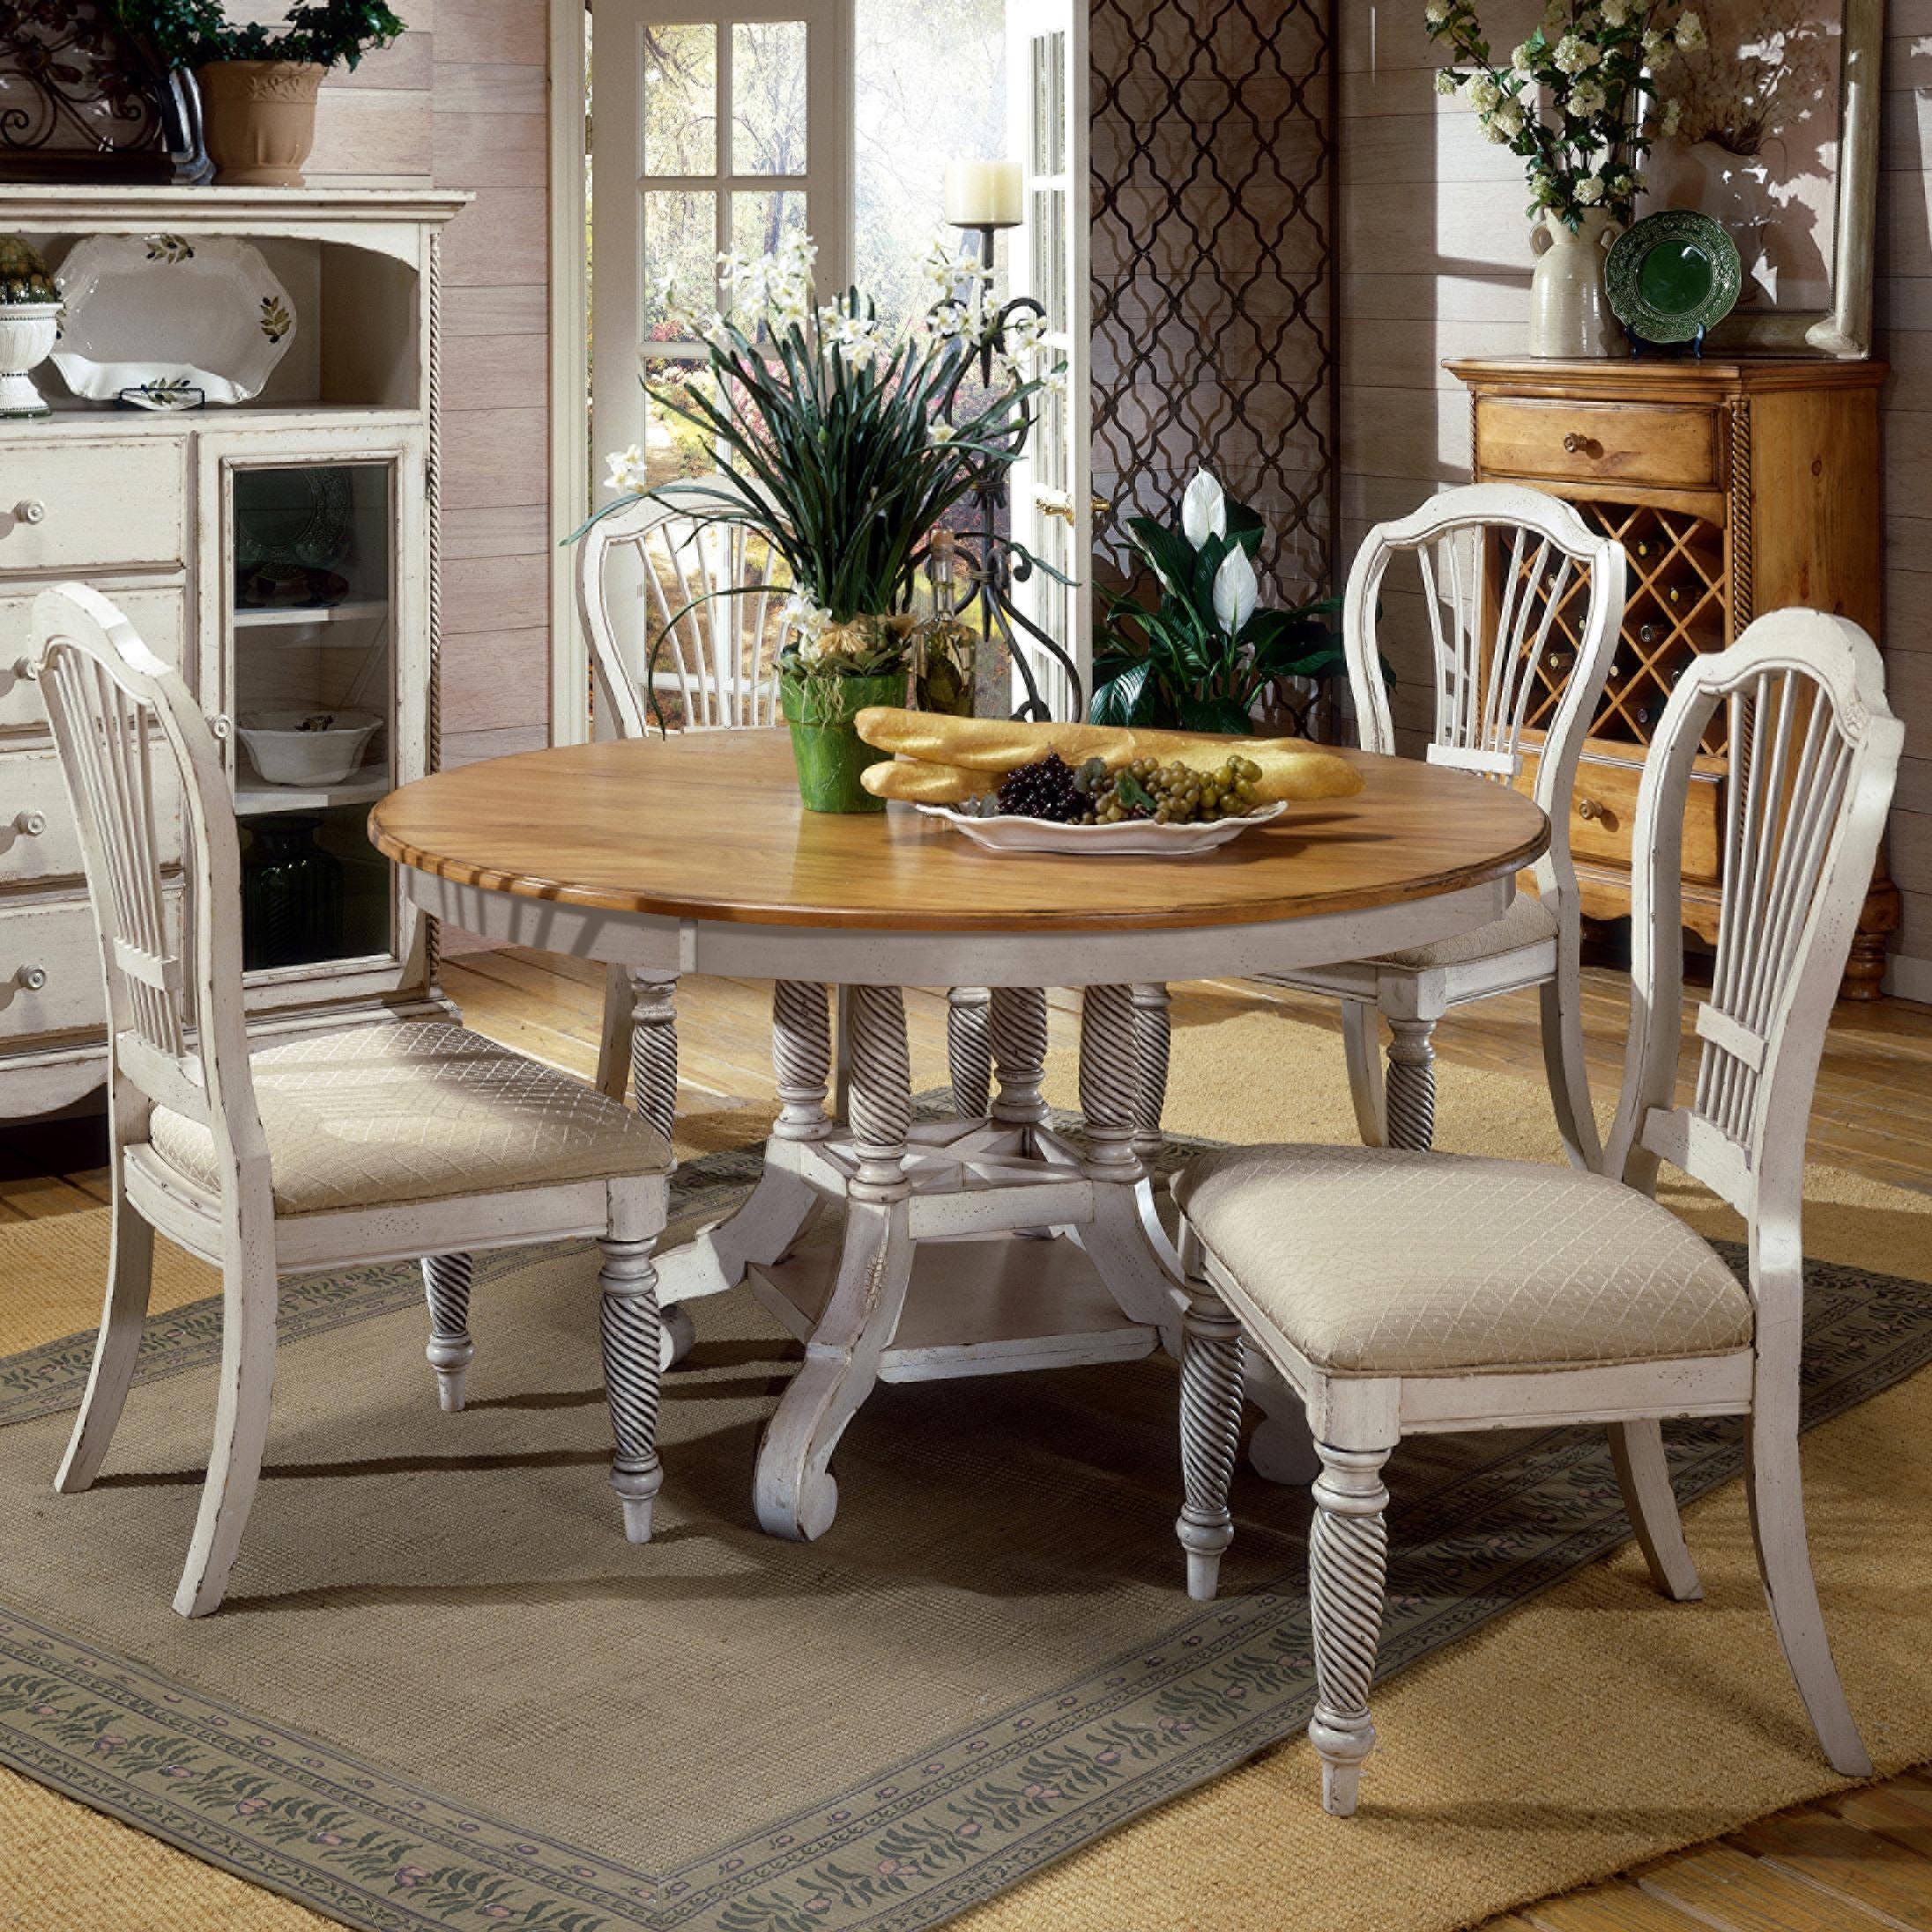 Hillsdale Wilshire 5 Piece Round Dining Table Set   Item Number:  4508DTBRNDC5